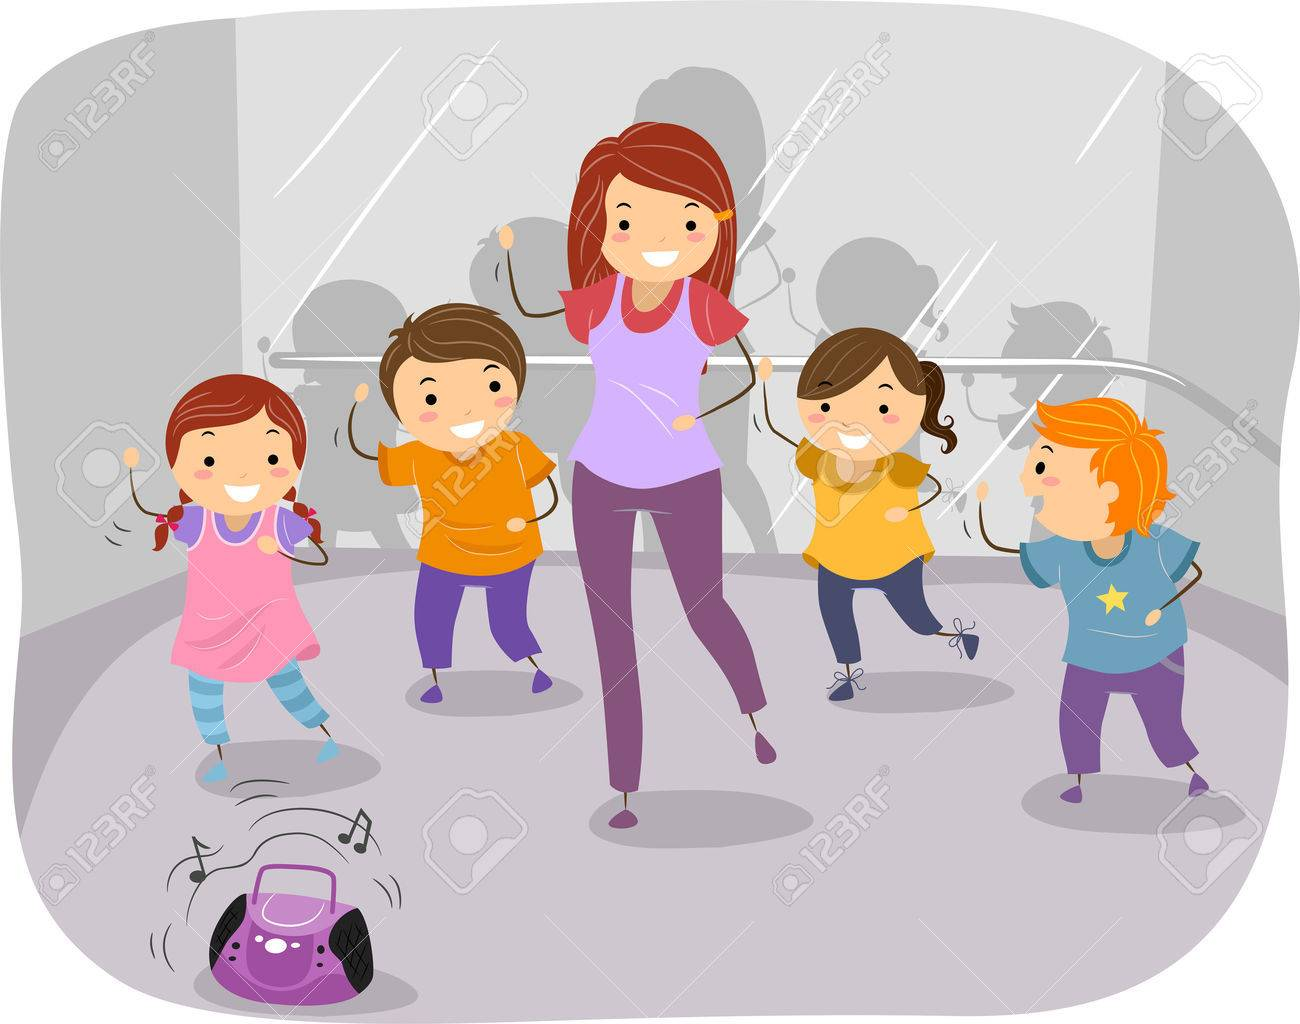 Illustration of Kids in a Dancing Class.